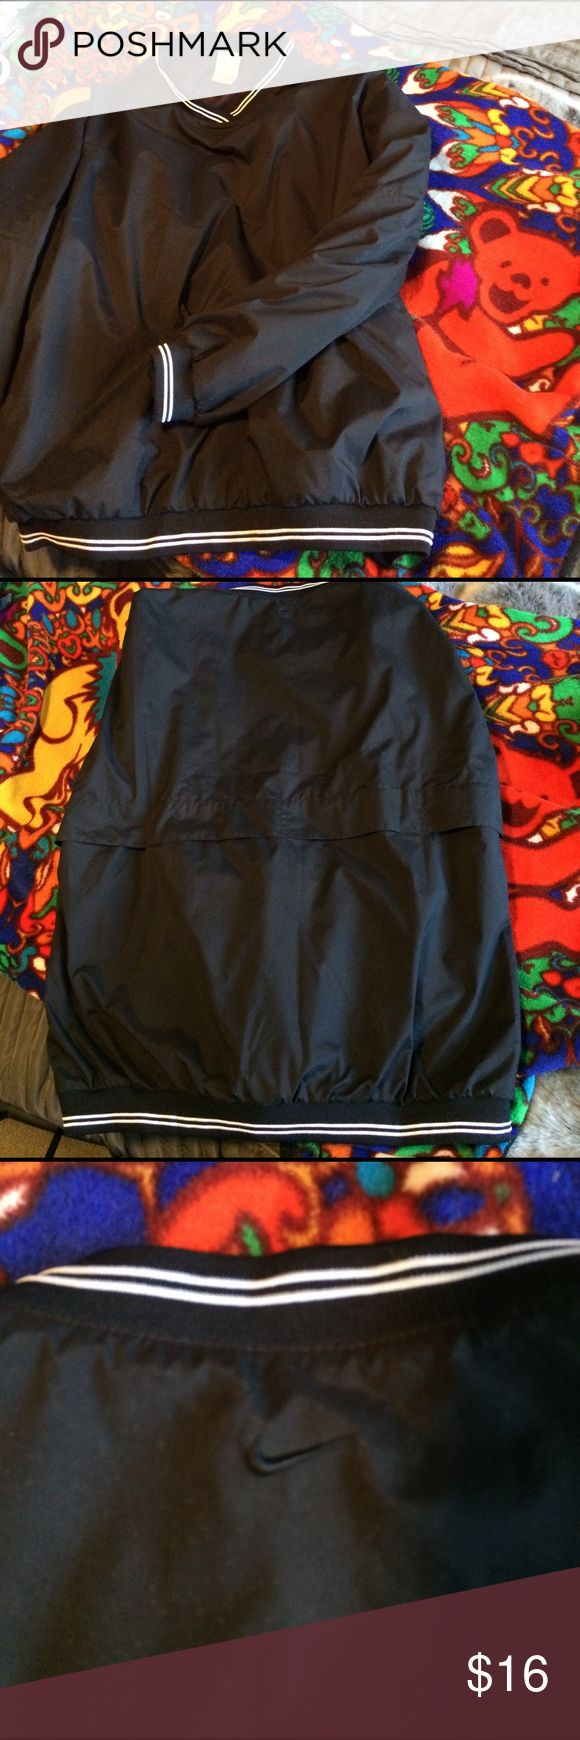 Nike ClimaFit Ladies p/o in Med with zip pockets Nike Clima Fit black Ladies p/o in Medium with 2 zip front pockets and black Nike swish on back collar. Black with black and white trim. Excellent condition besides initial on label. See pic. Nike Tops Sweatshirts & Hoodies